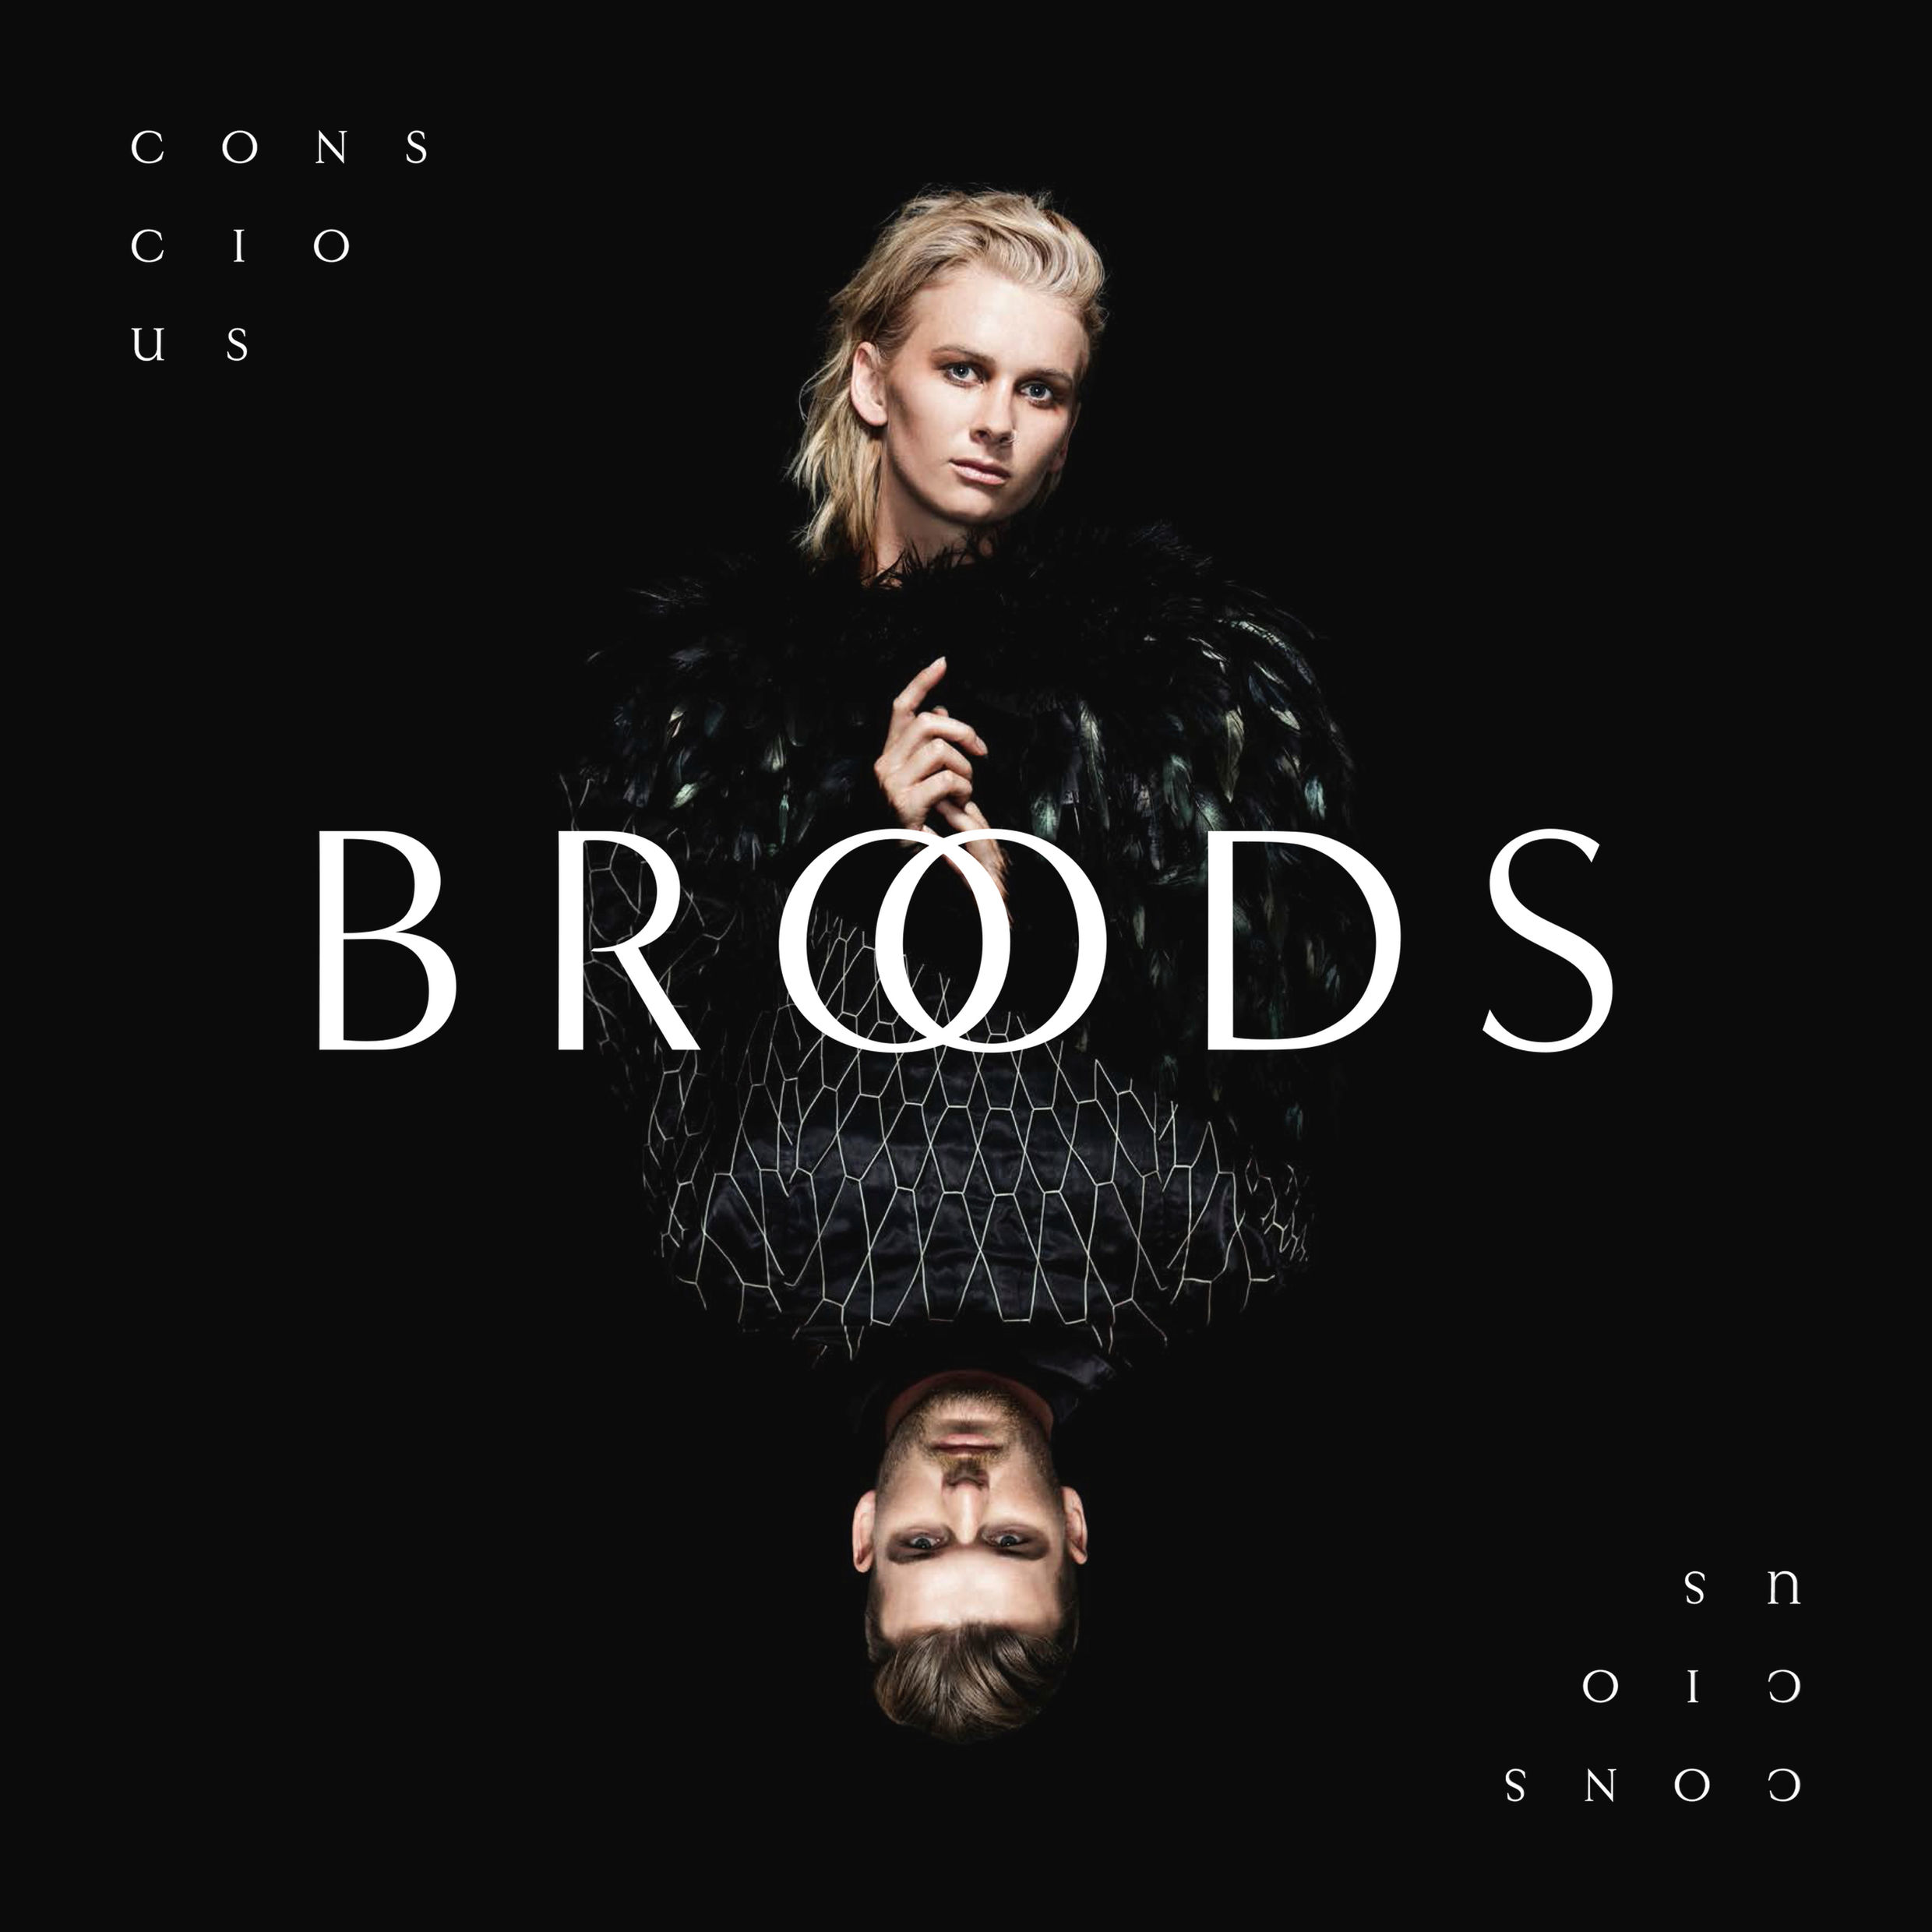 broods-conscious-2016-2480x2480